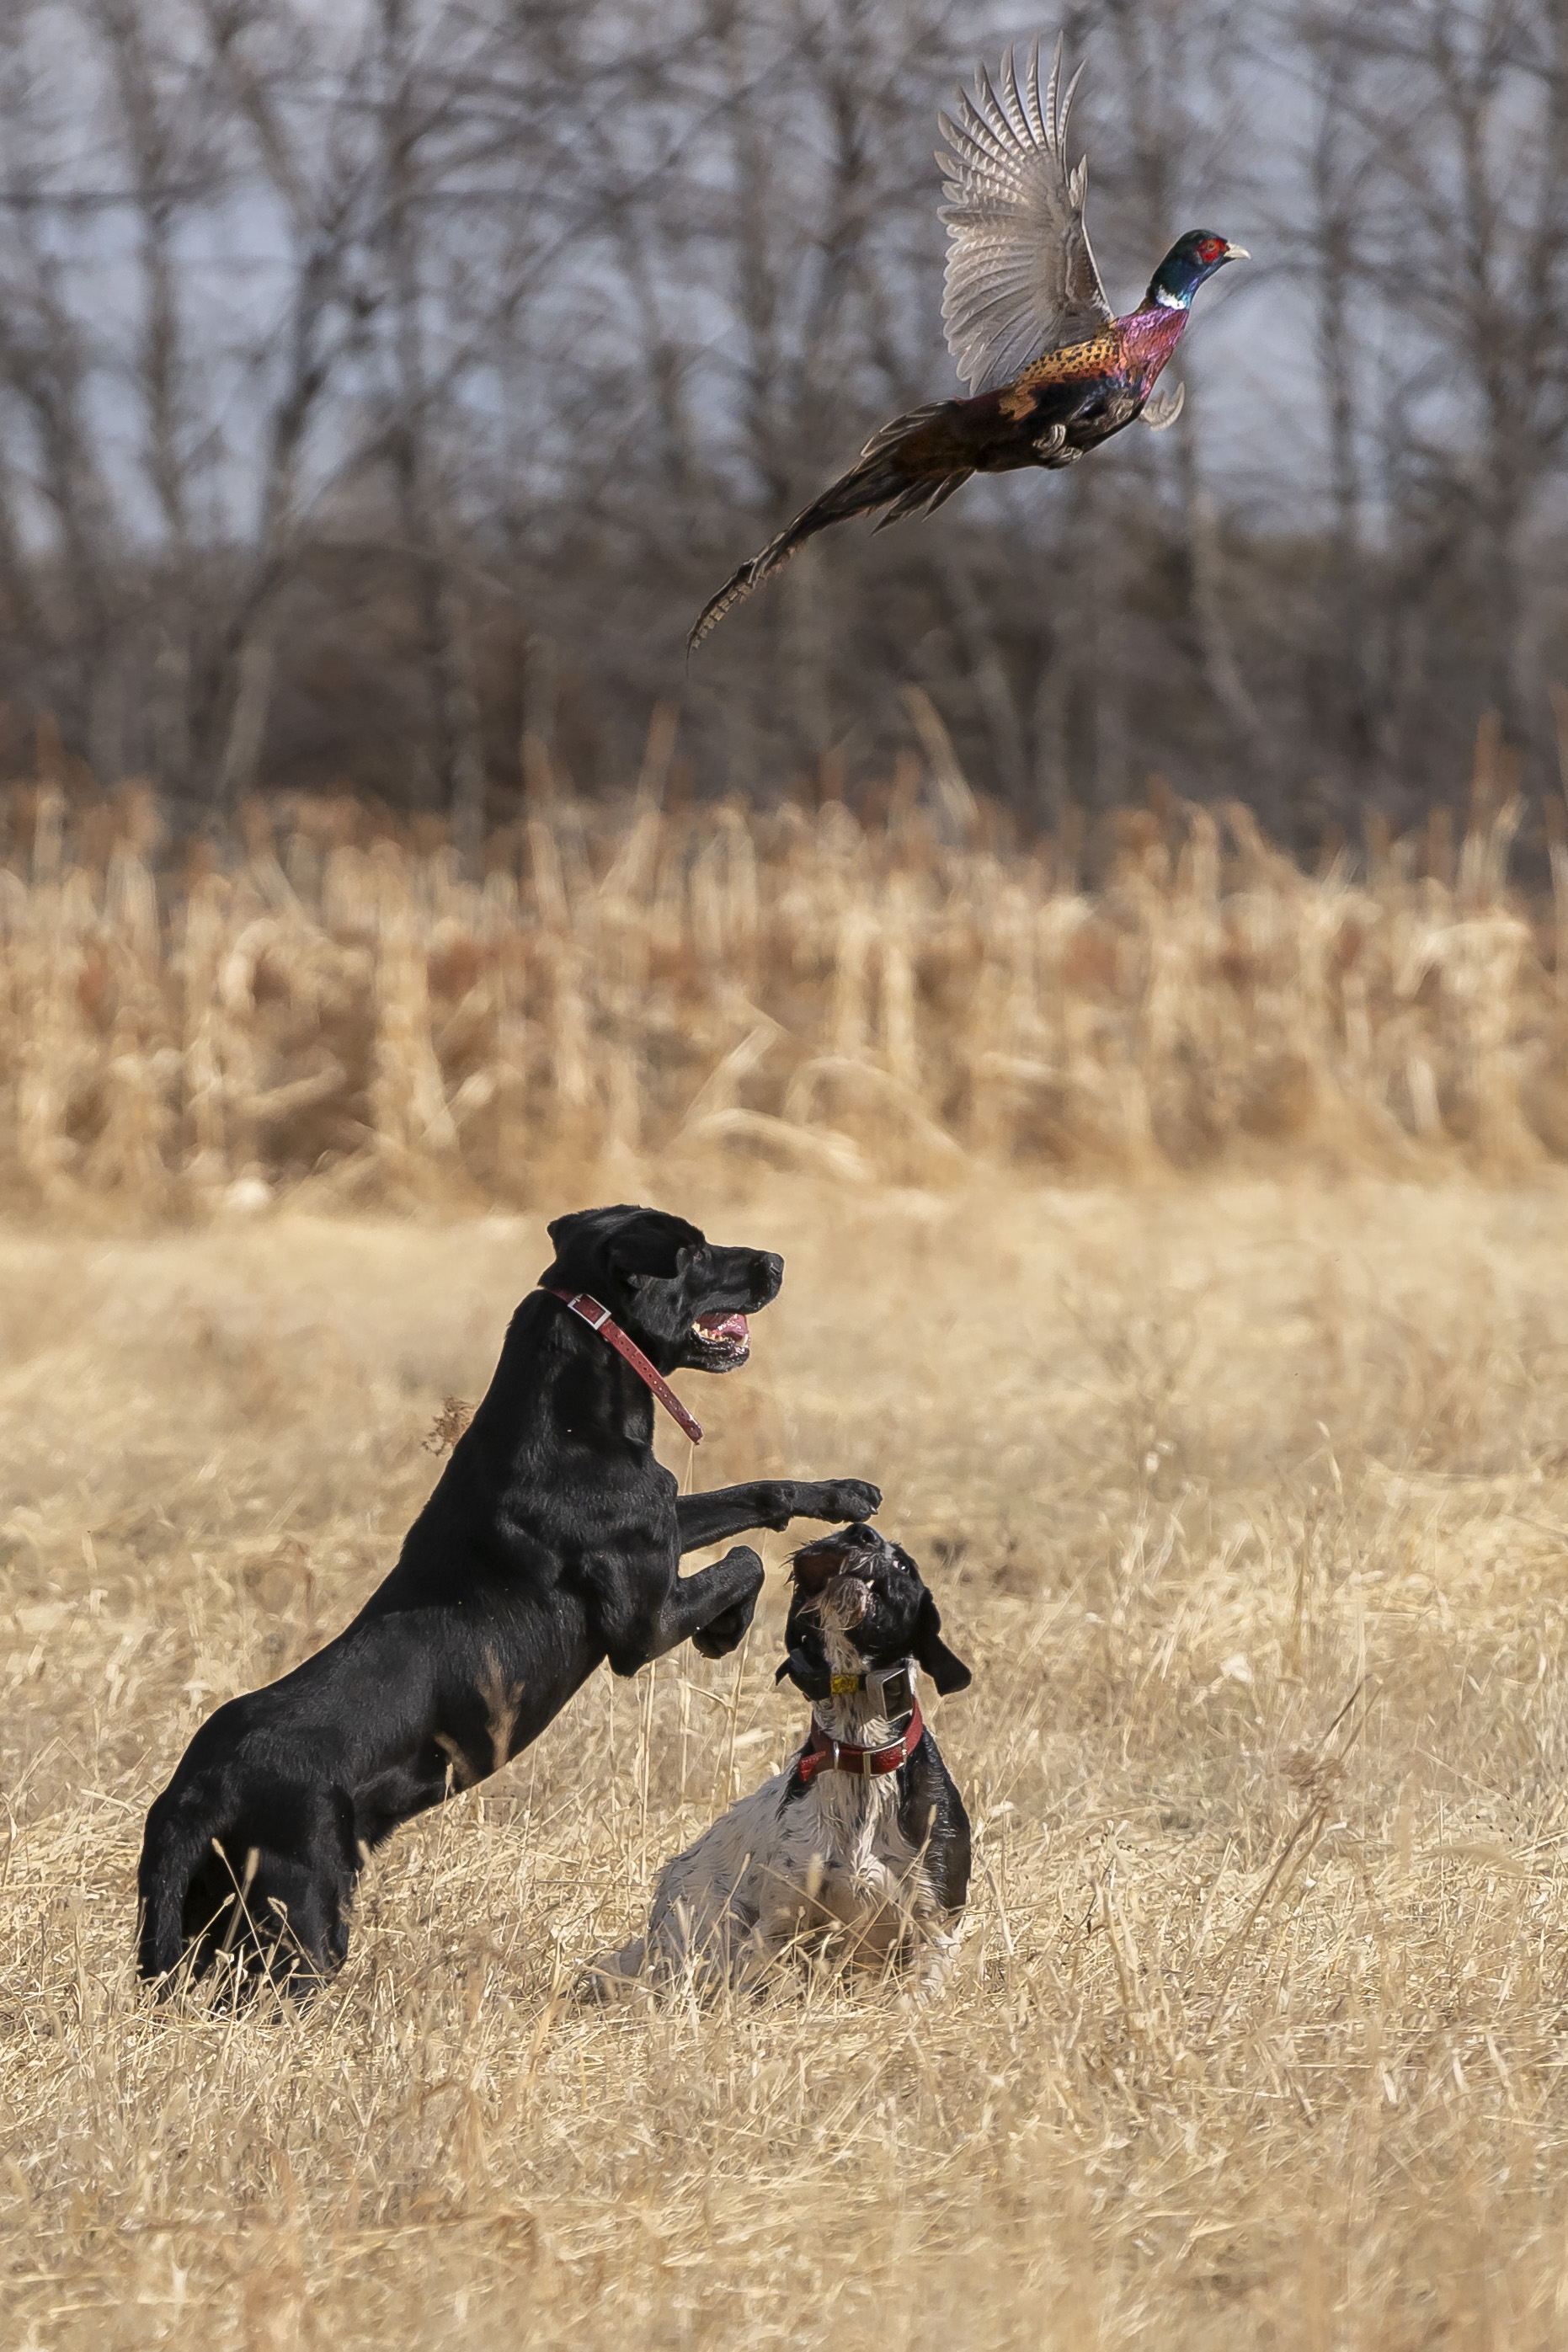 Hunting dogs in action